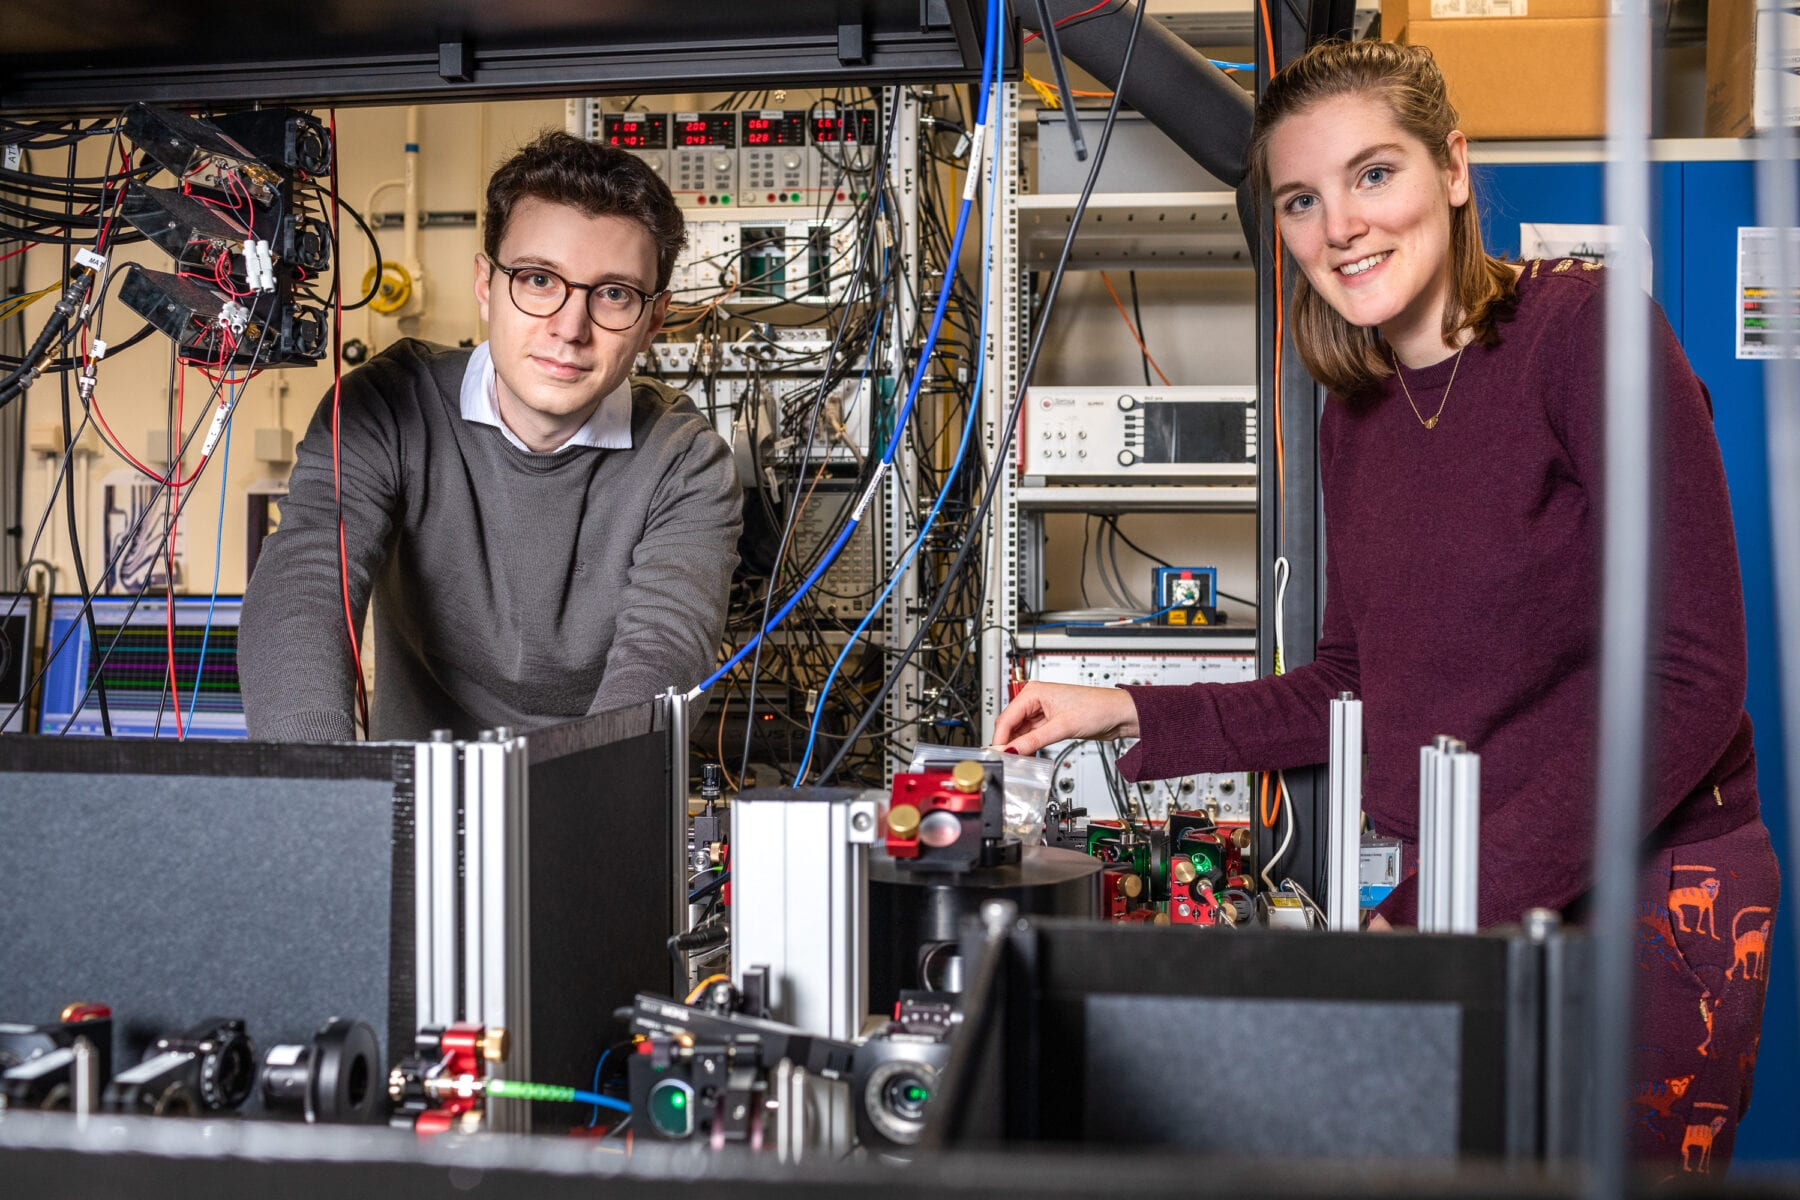 Co-authors Matteo Pompili (left) and Sophie Hermans (right), both PhD student in the group of Ronald Hanson, at one of the quantum network nodes.